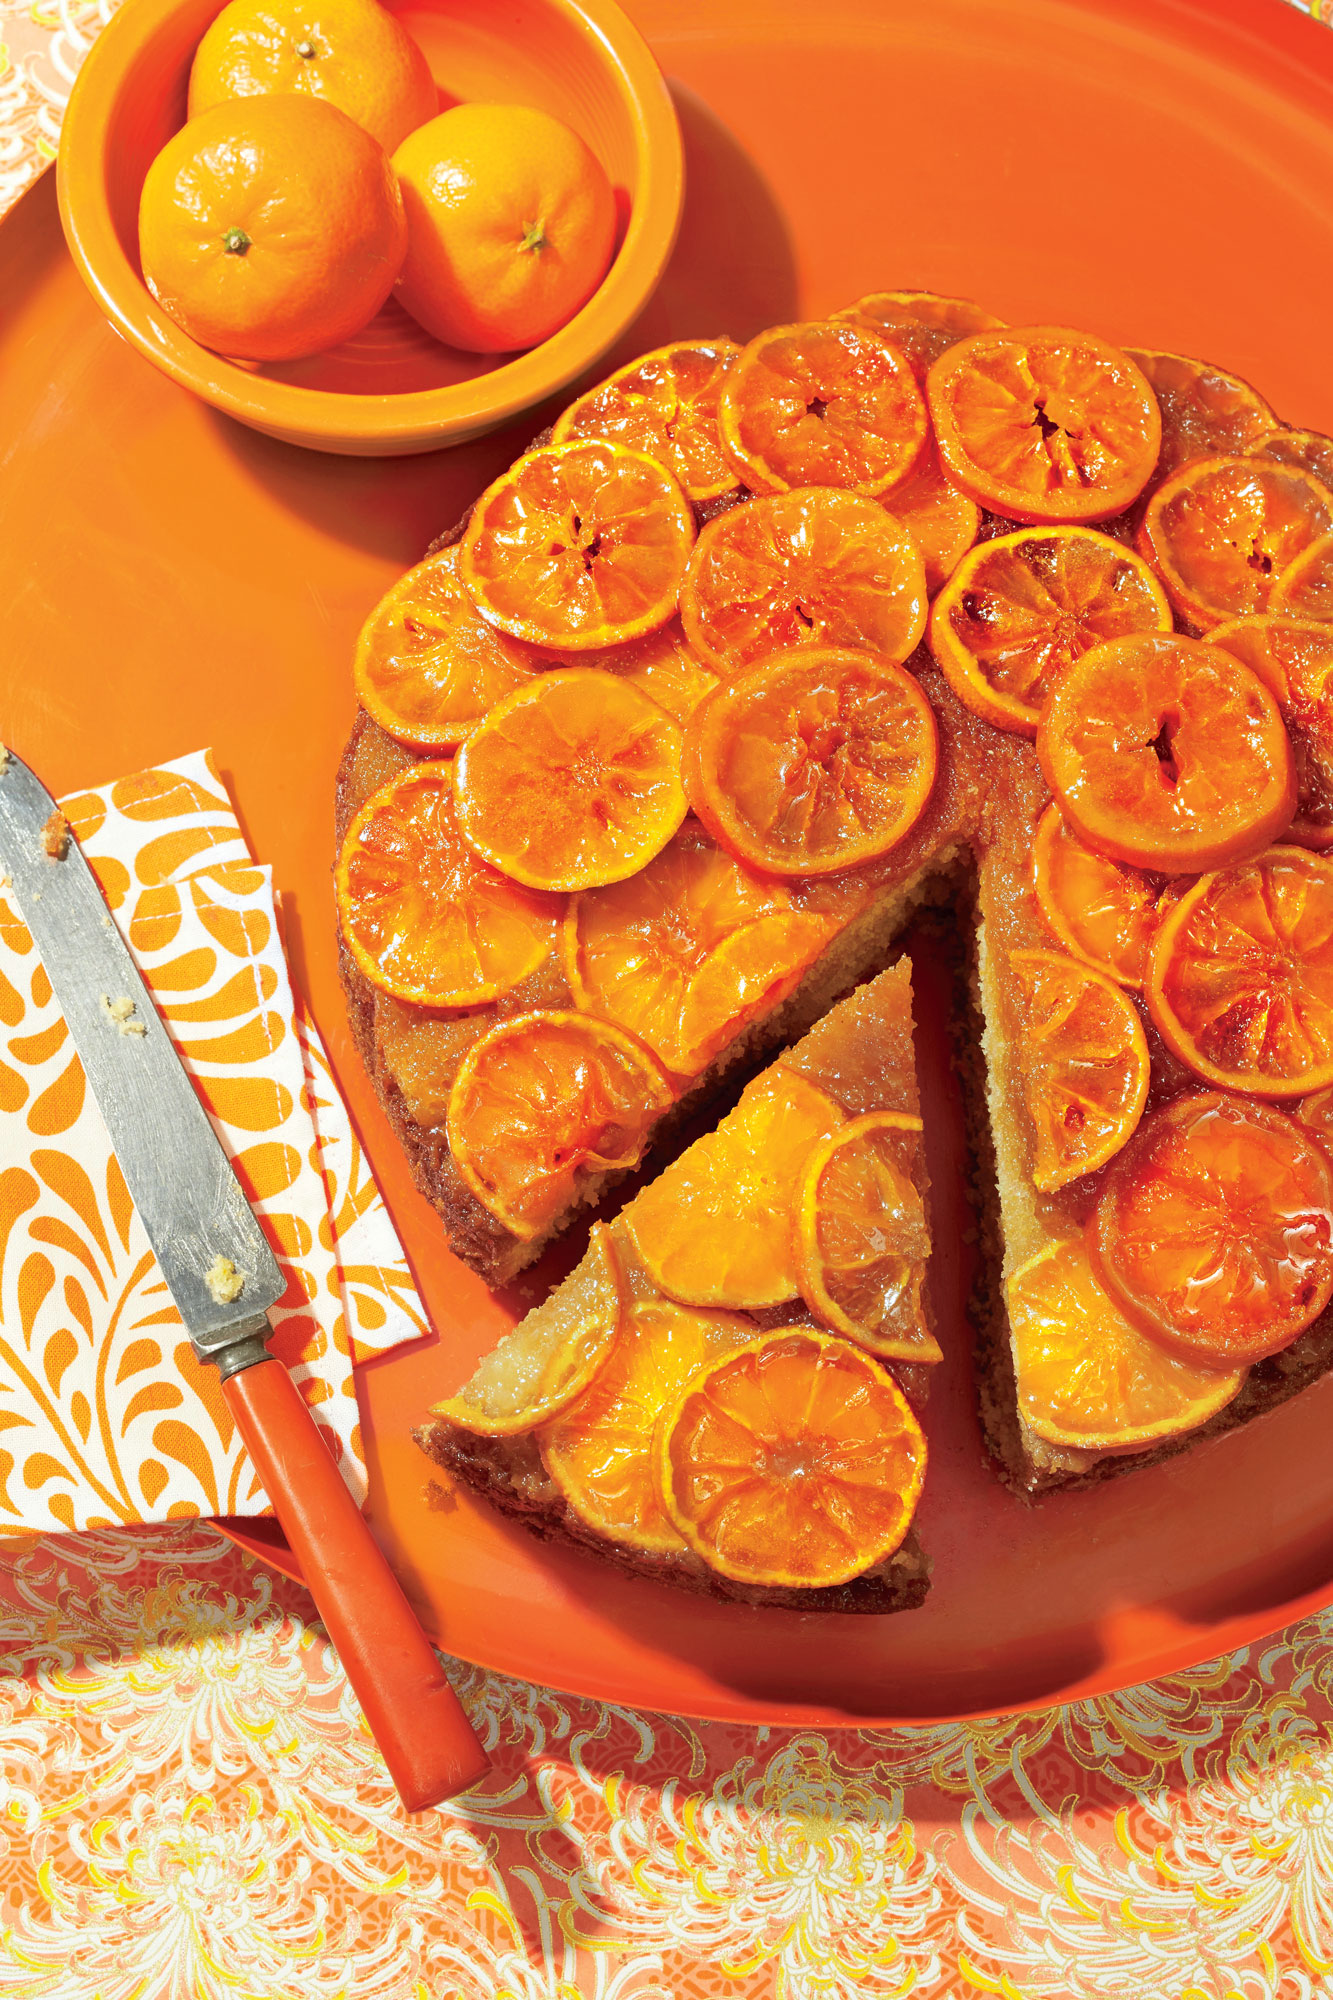 4 Bright and Delicious Ways to Use Clementines